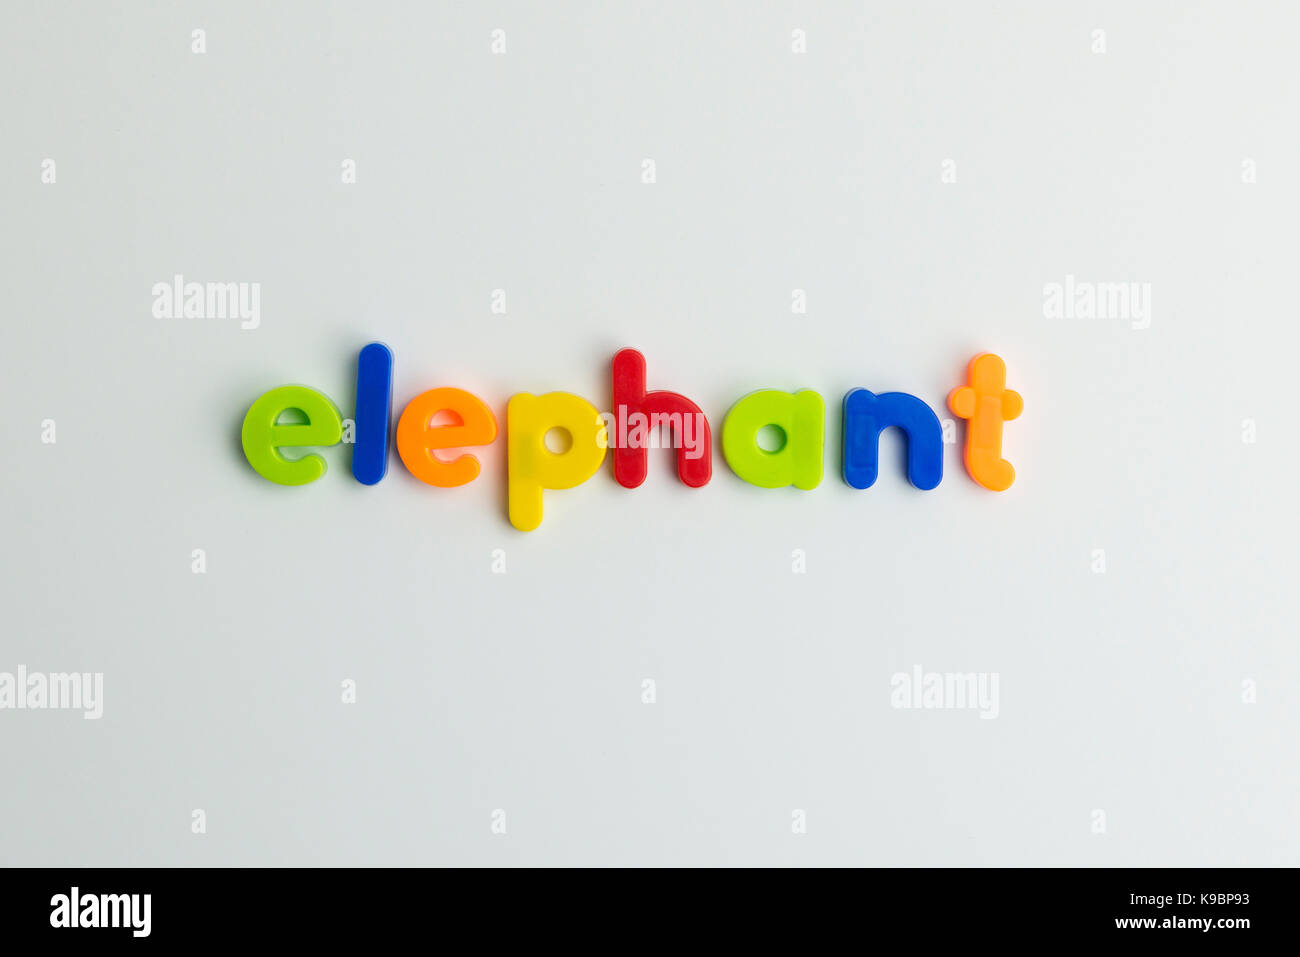 elephant word in colourful children's letters - Stock Image